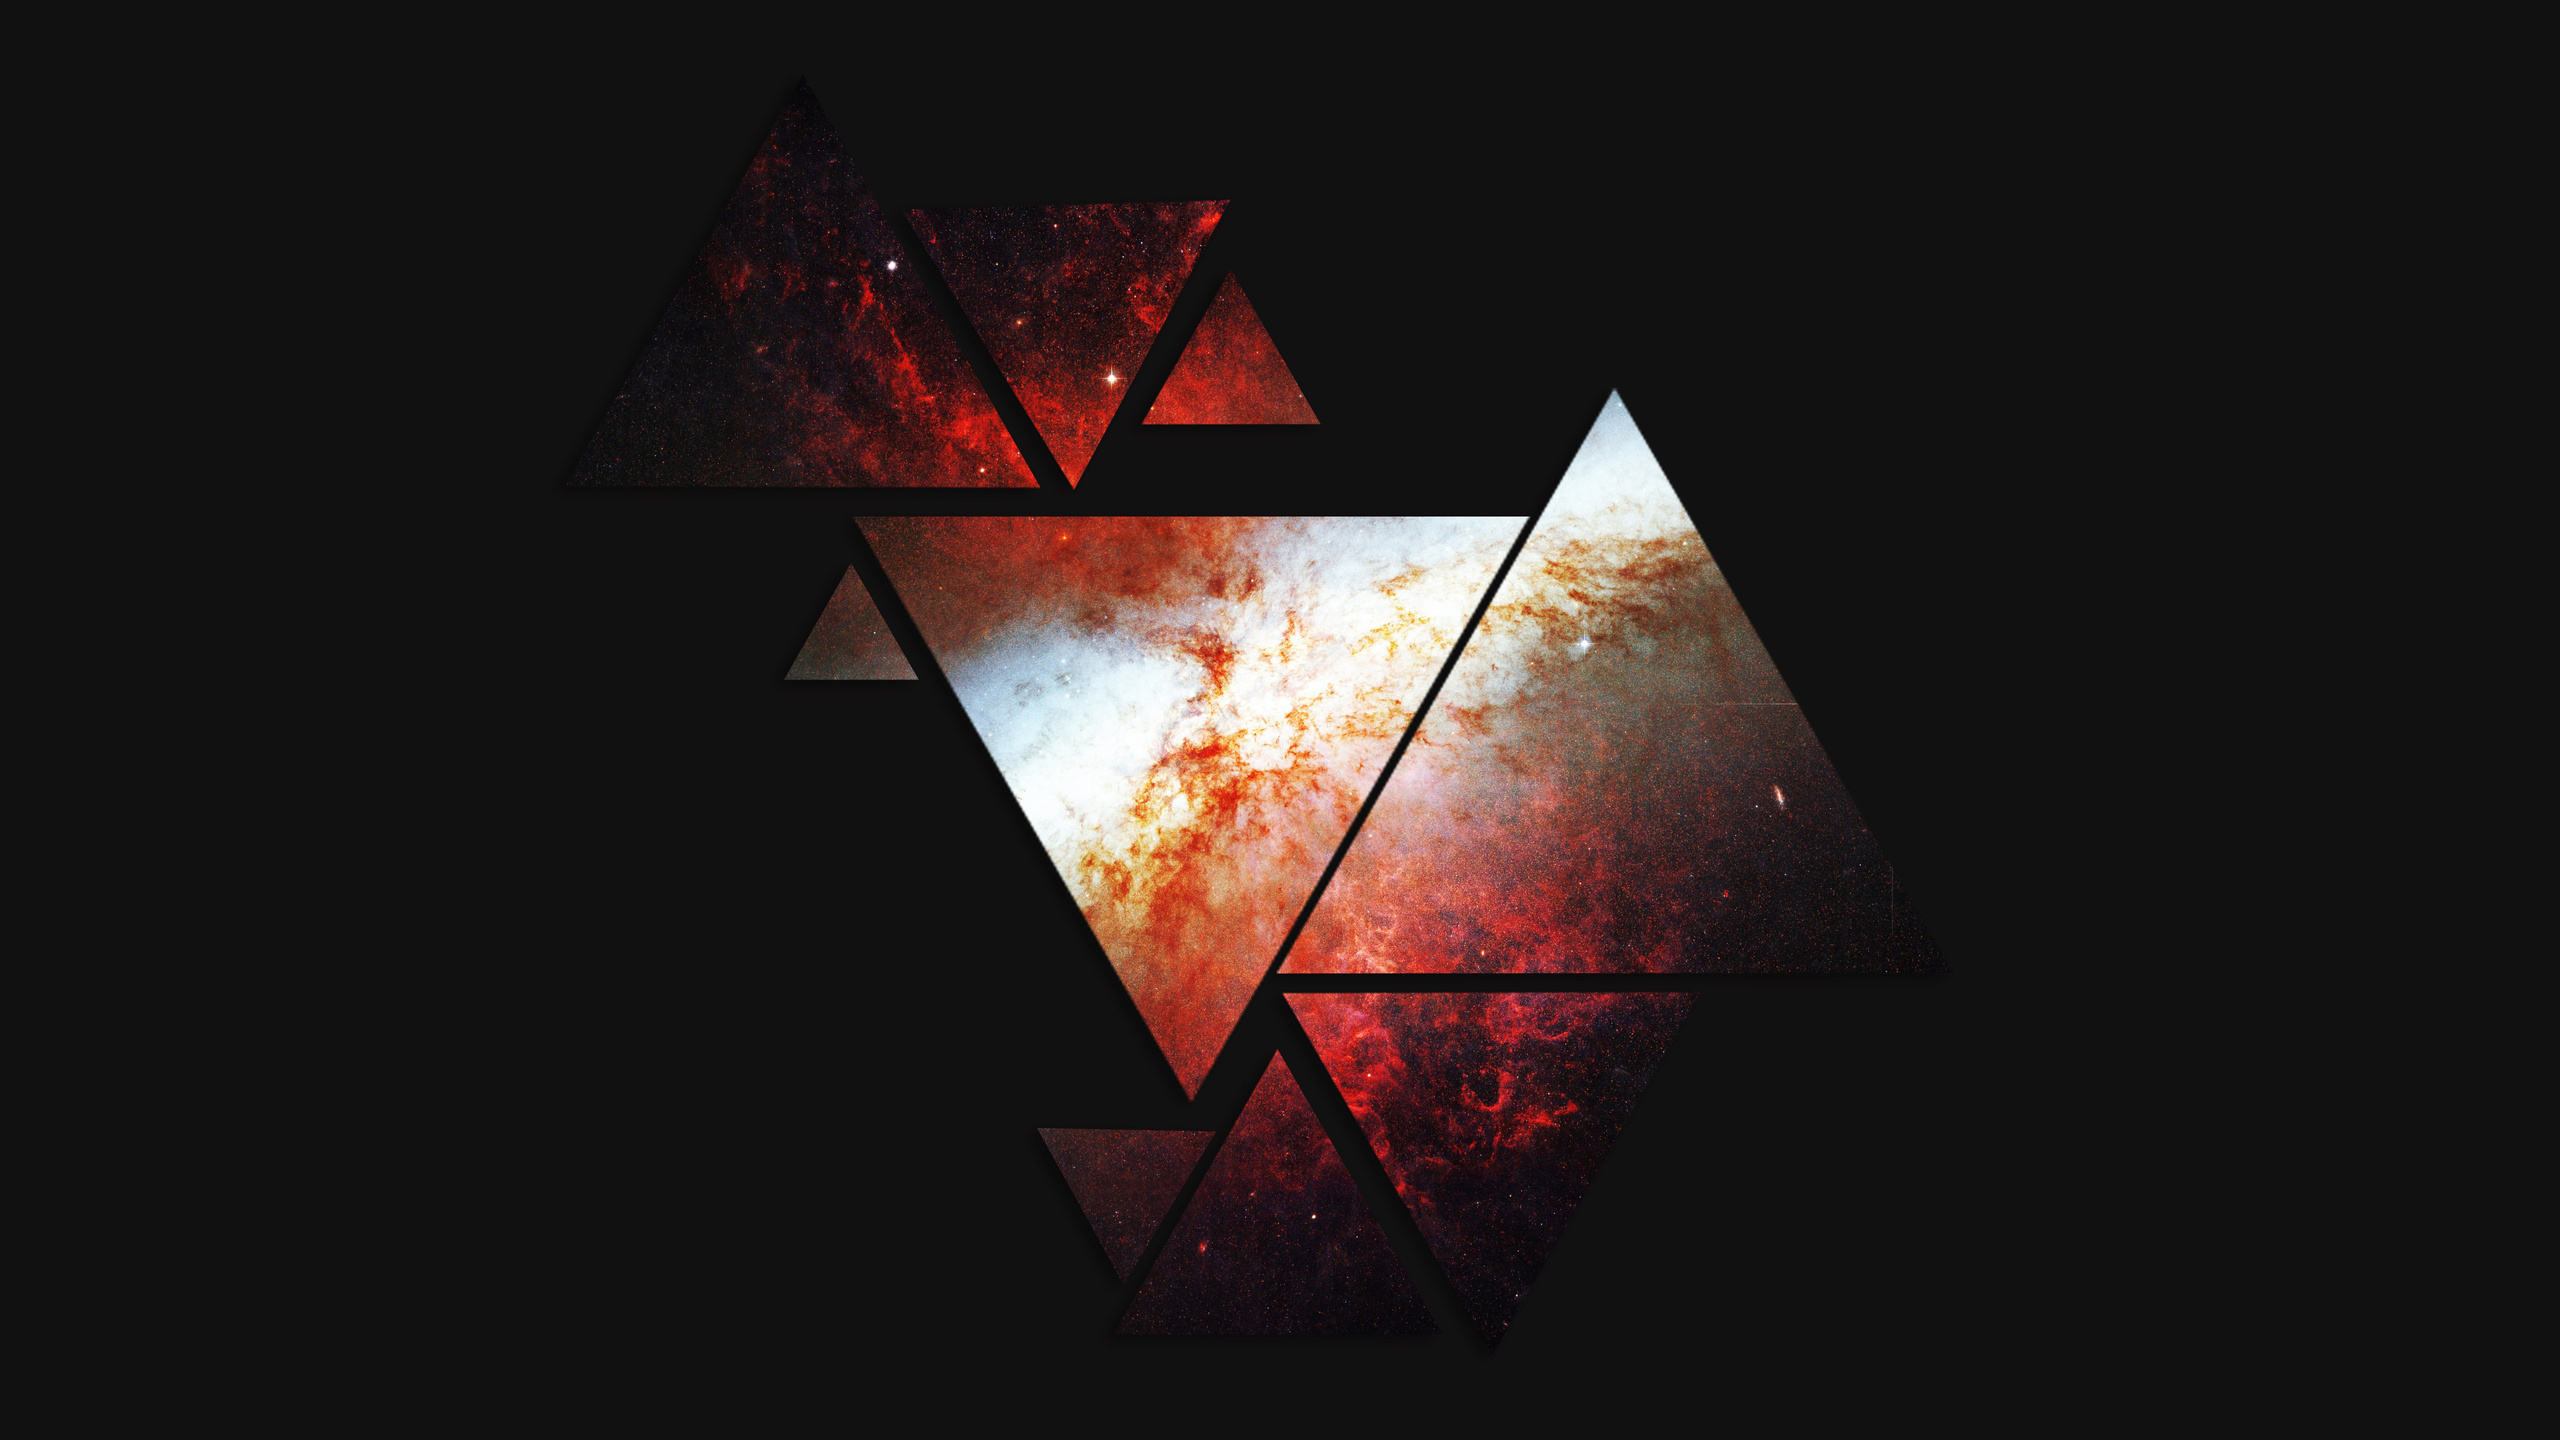 Triangle wallpapers pictures images - Abstract space wallpaper ...